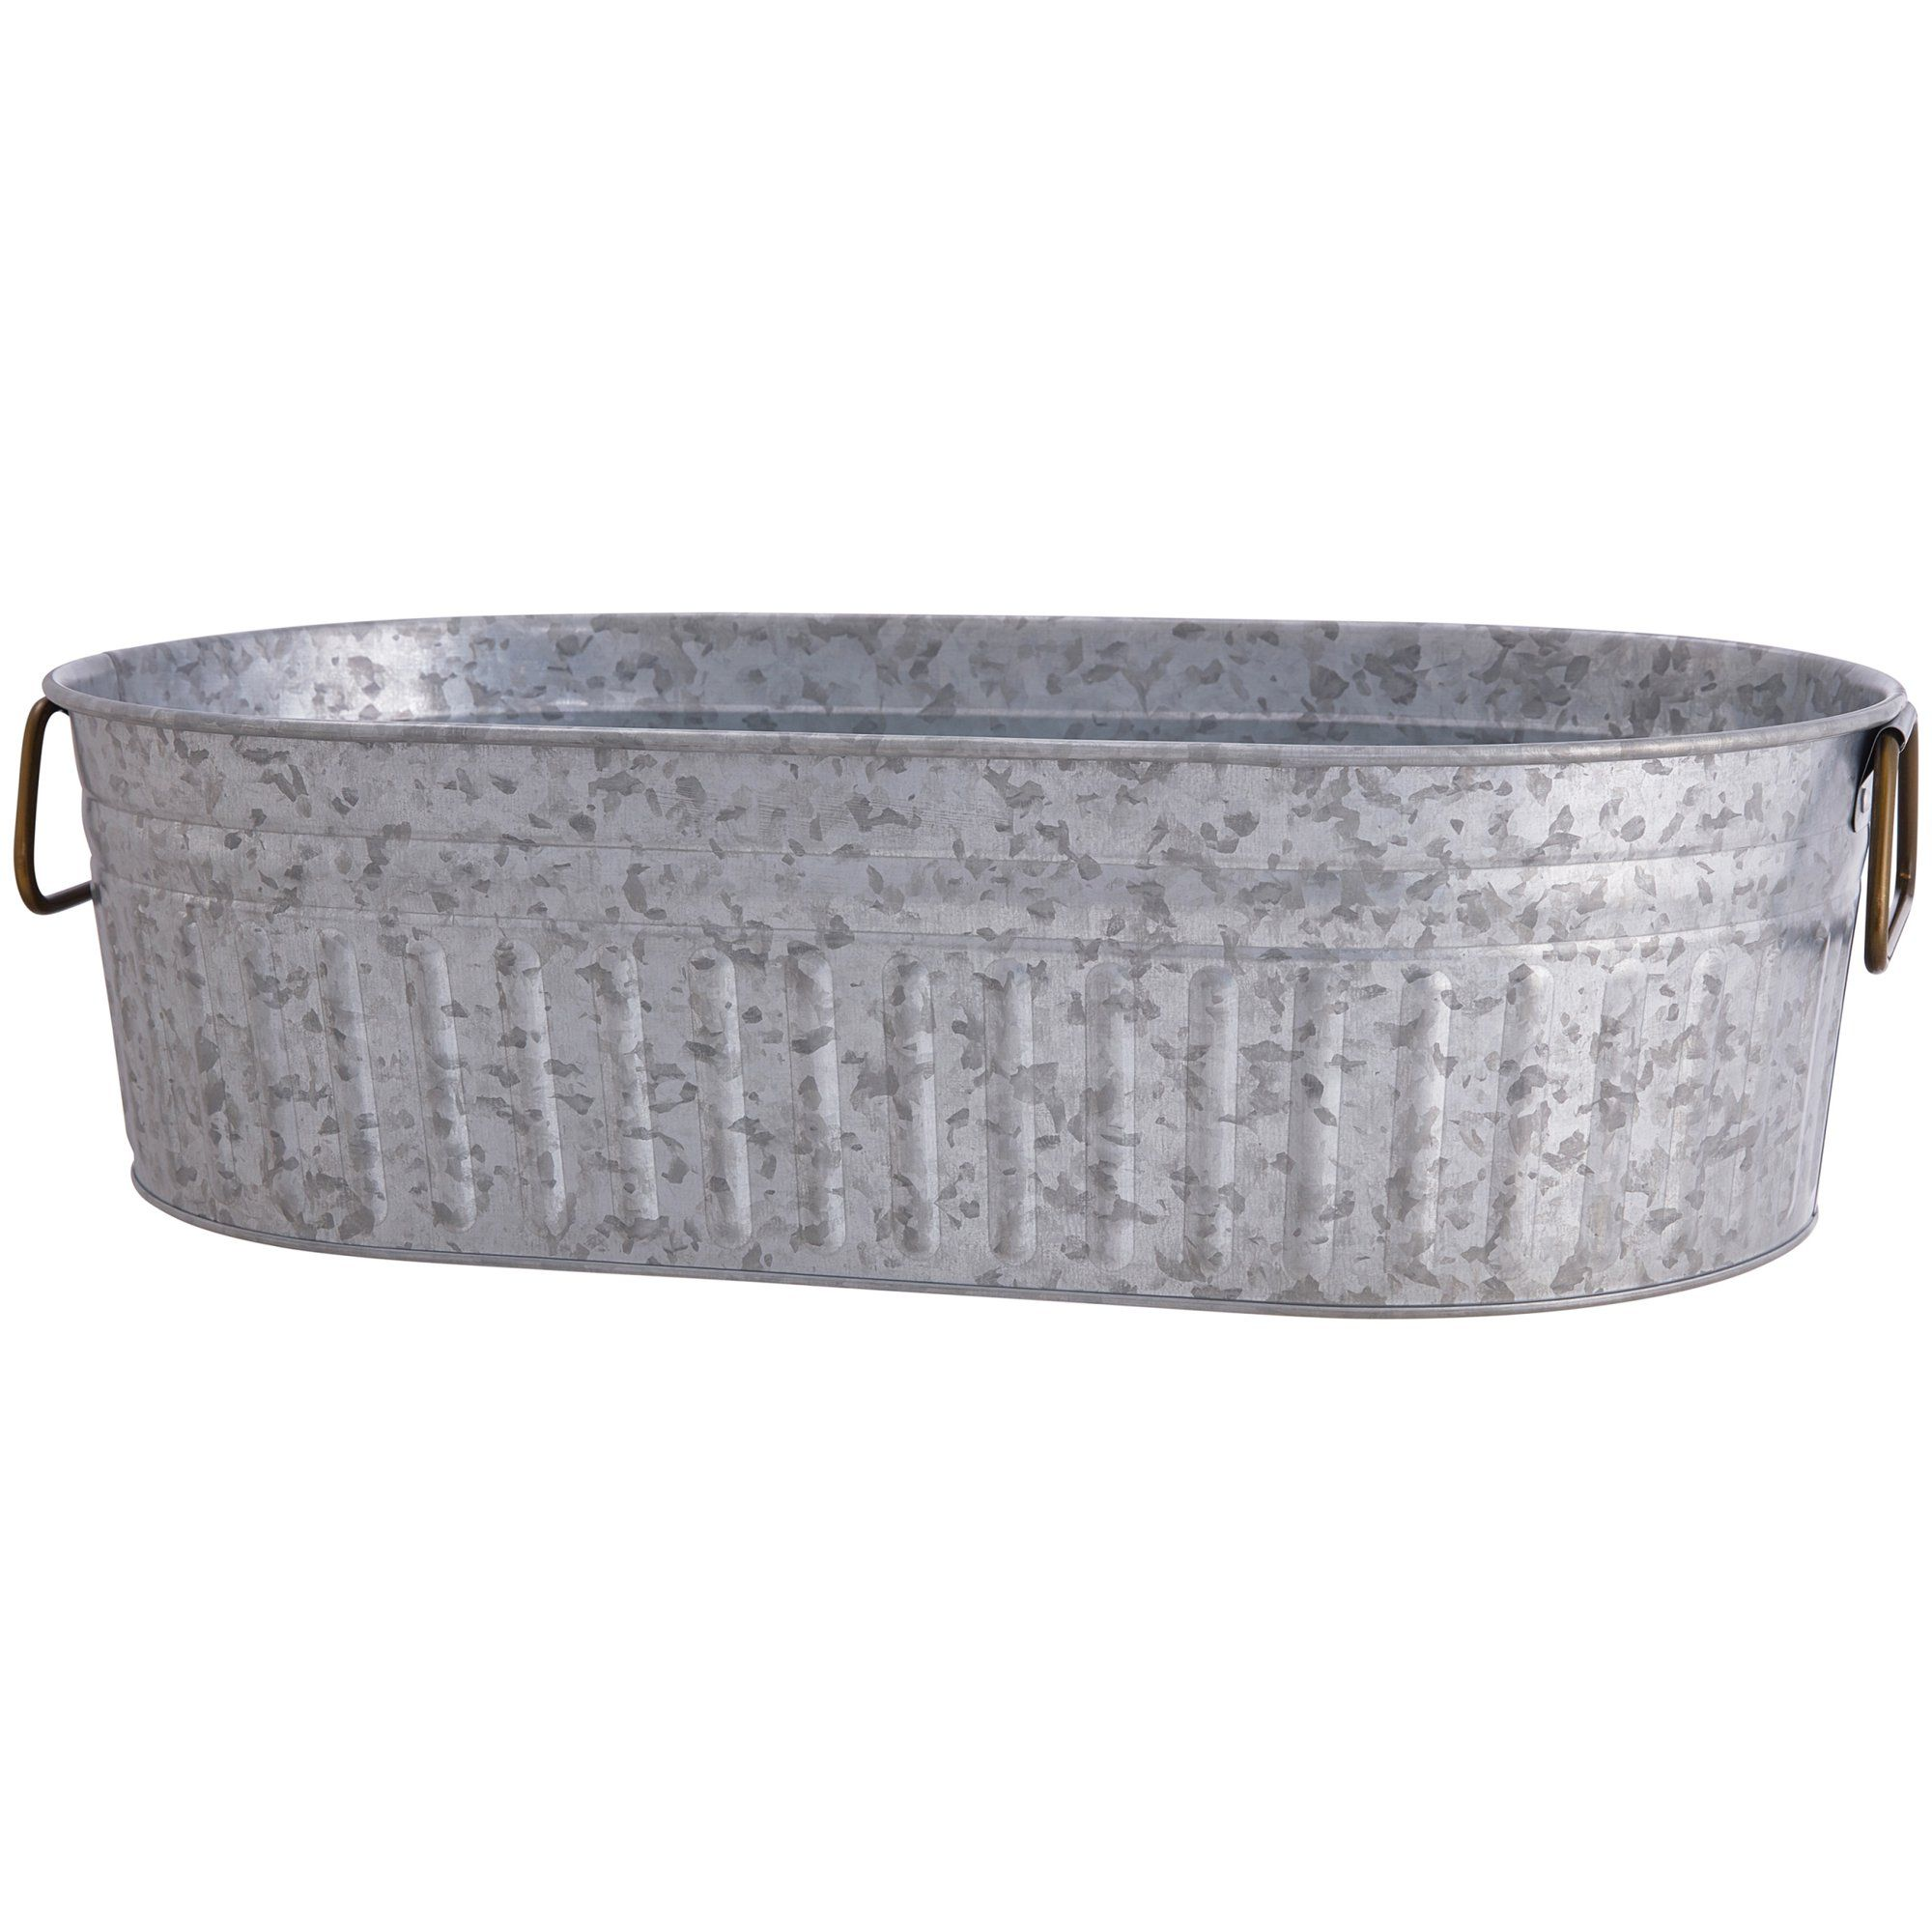 d50d2b406c61715fd2f0f4bb67de4af1 - Better Homes And Gardens Tin Tub